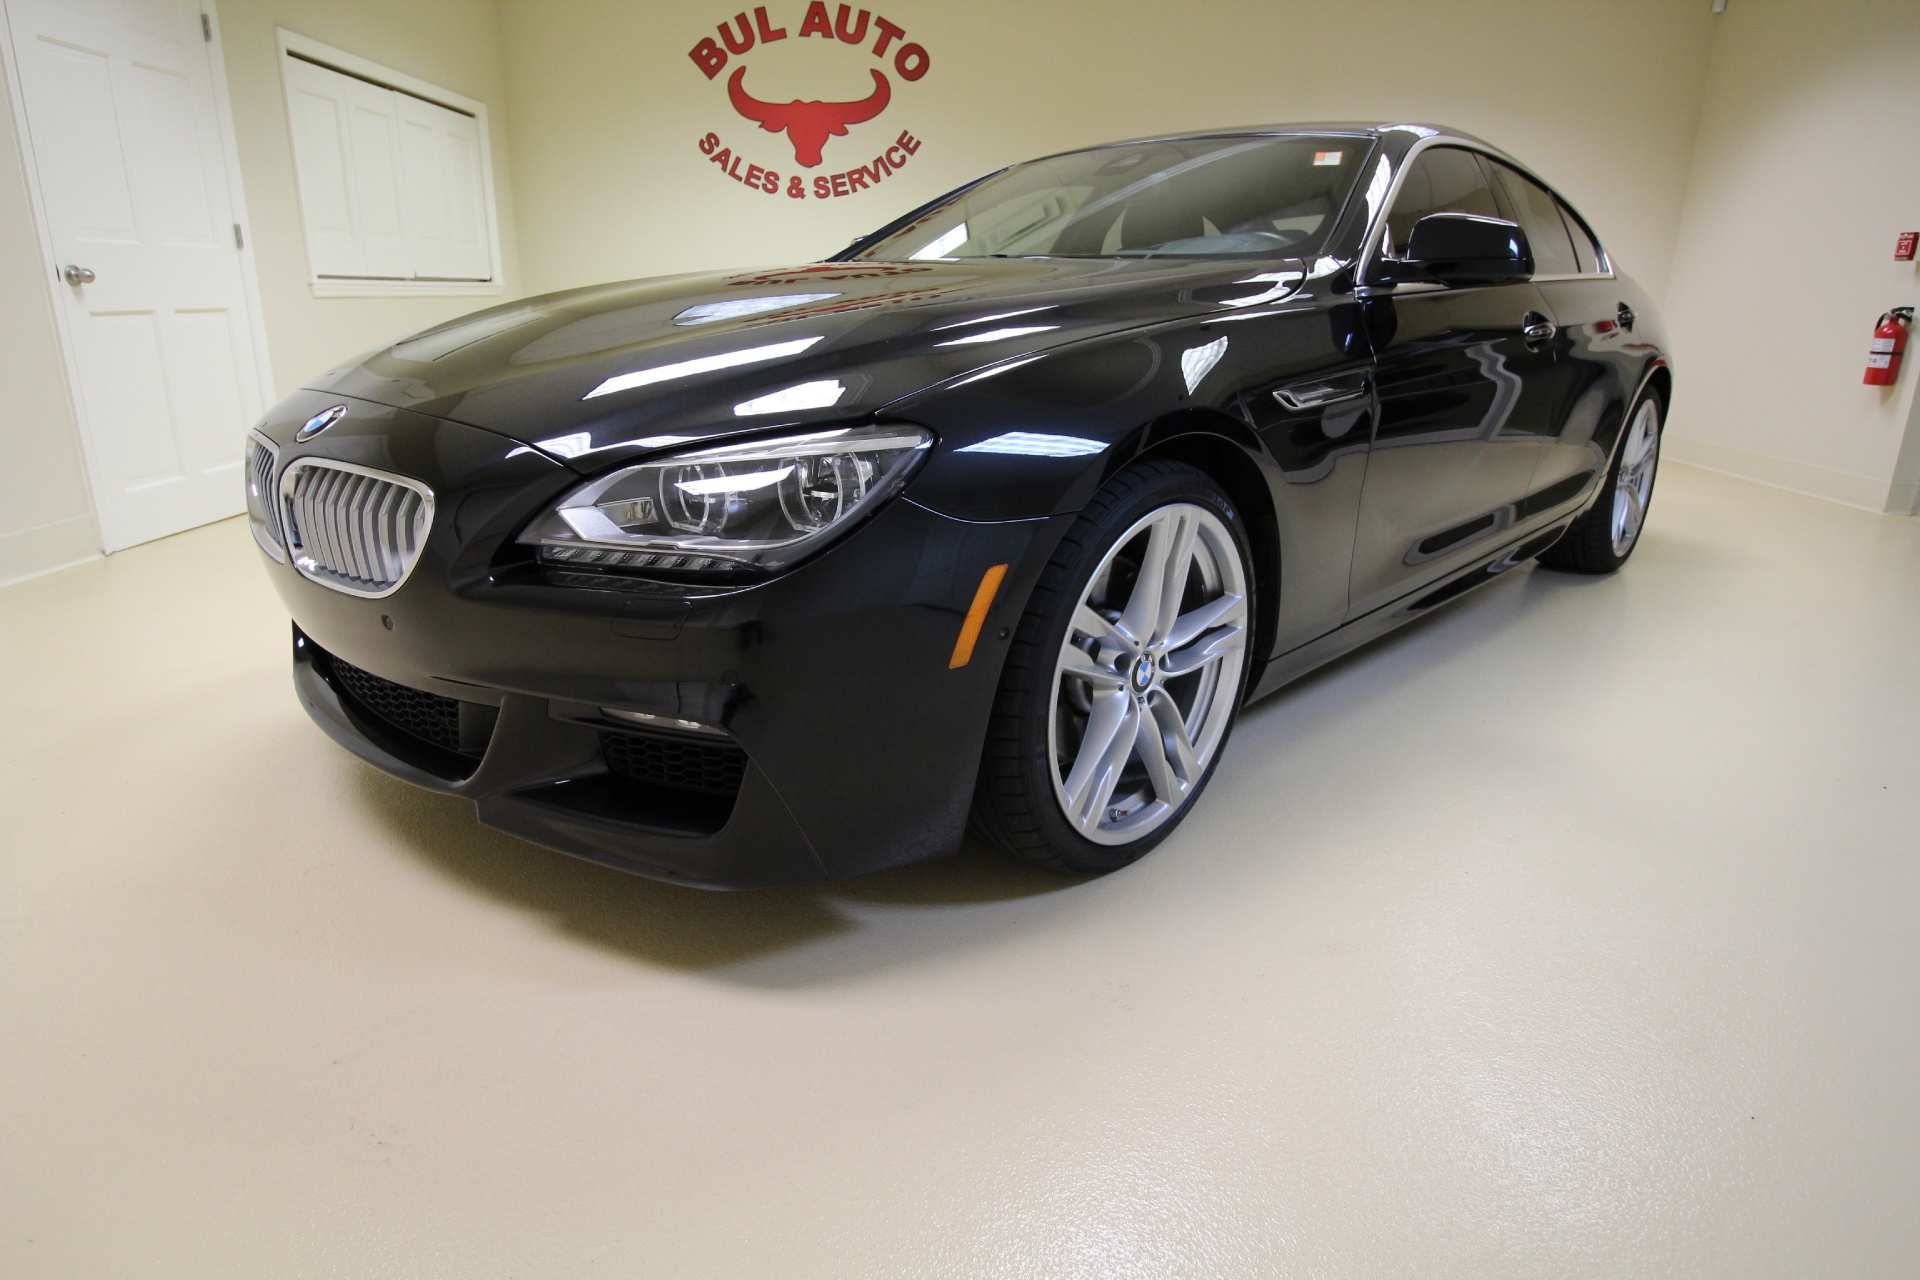 2013 bmw 6 series 650i xdrive gran coupe 20in wheels msport loaded stock 16229 for sale near. Black Bedroom Furniture Sets. Home Design Ideas